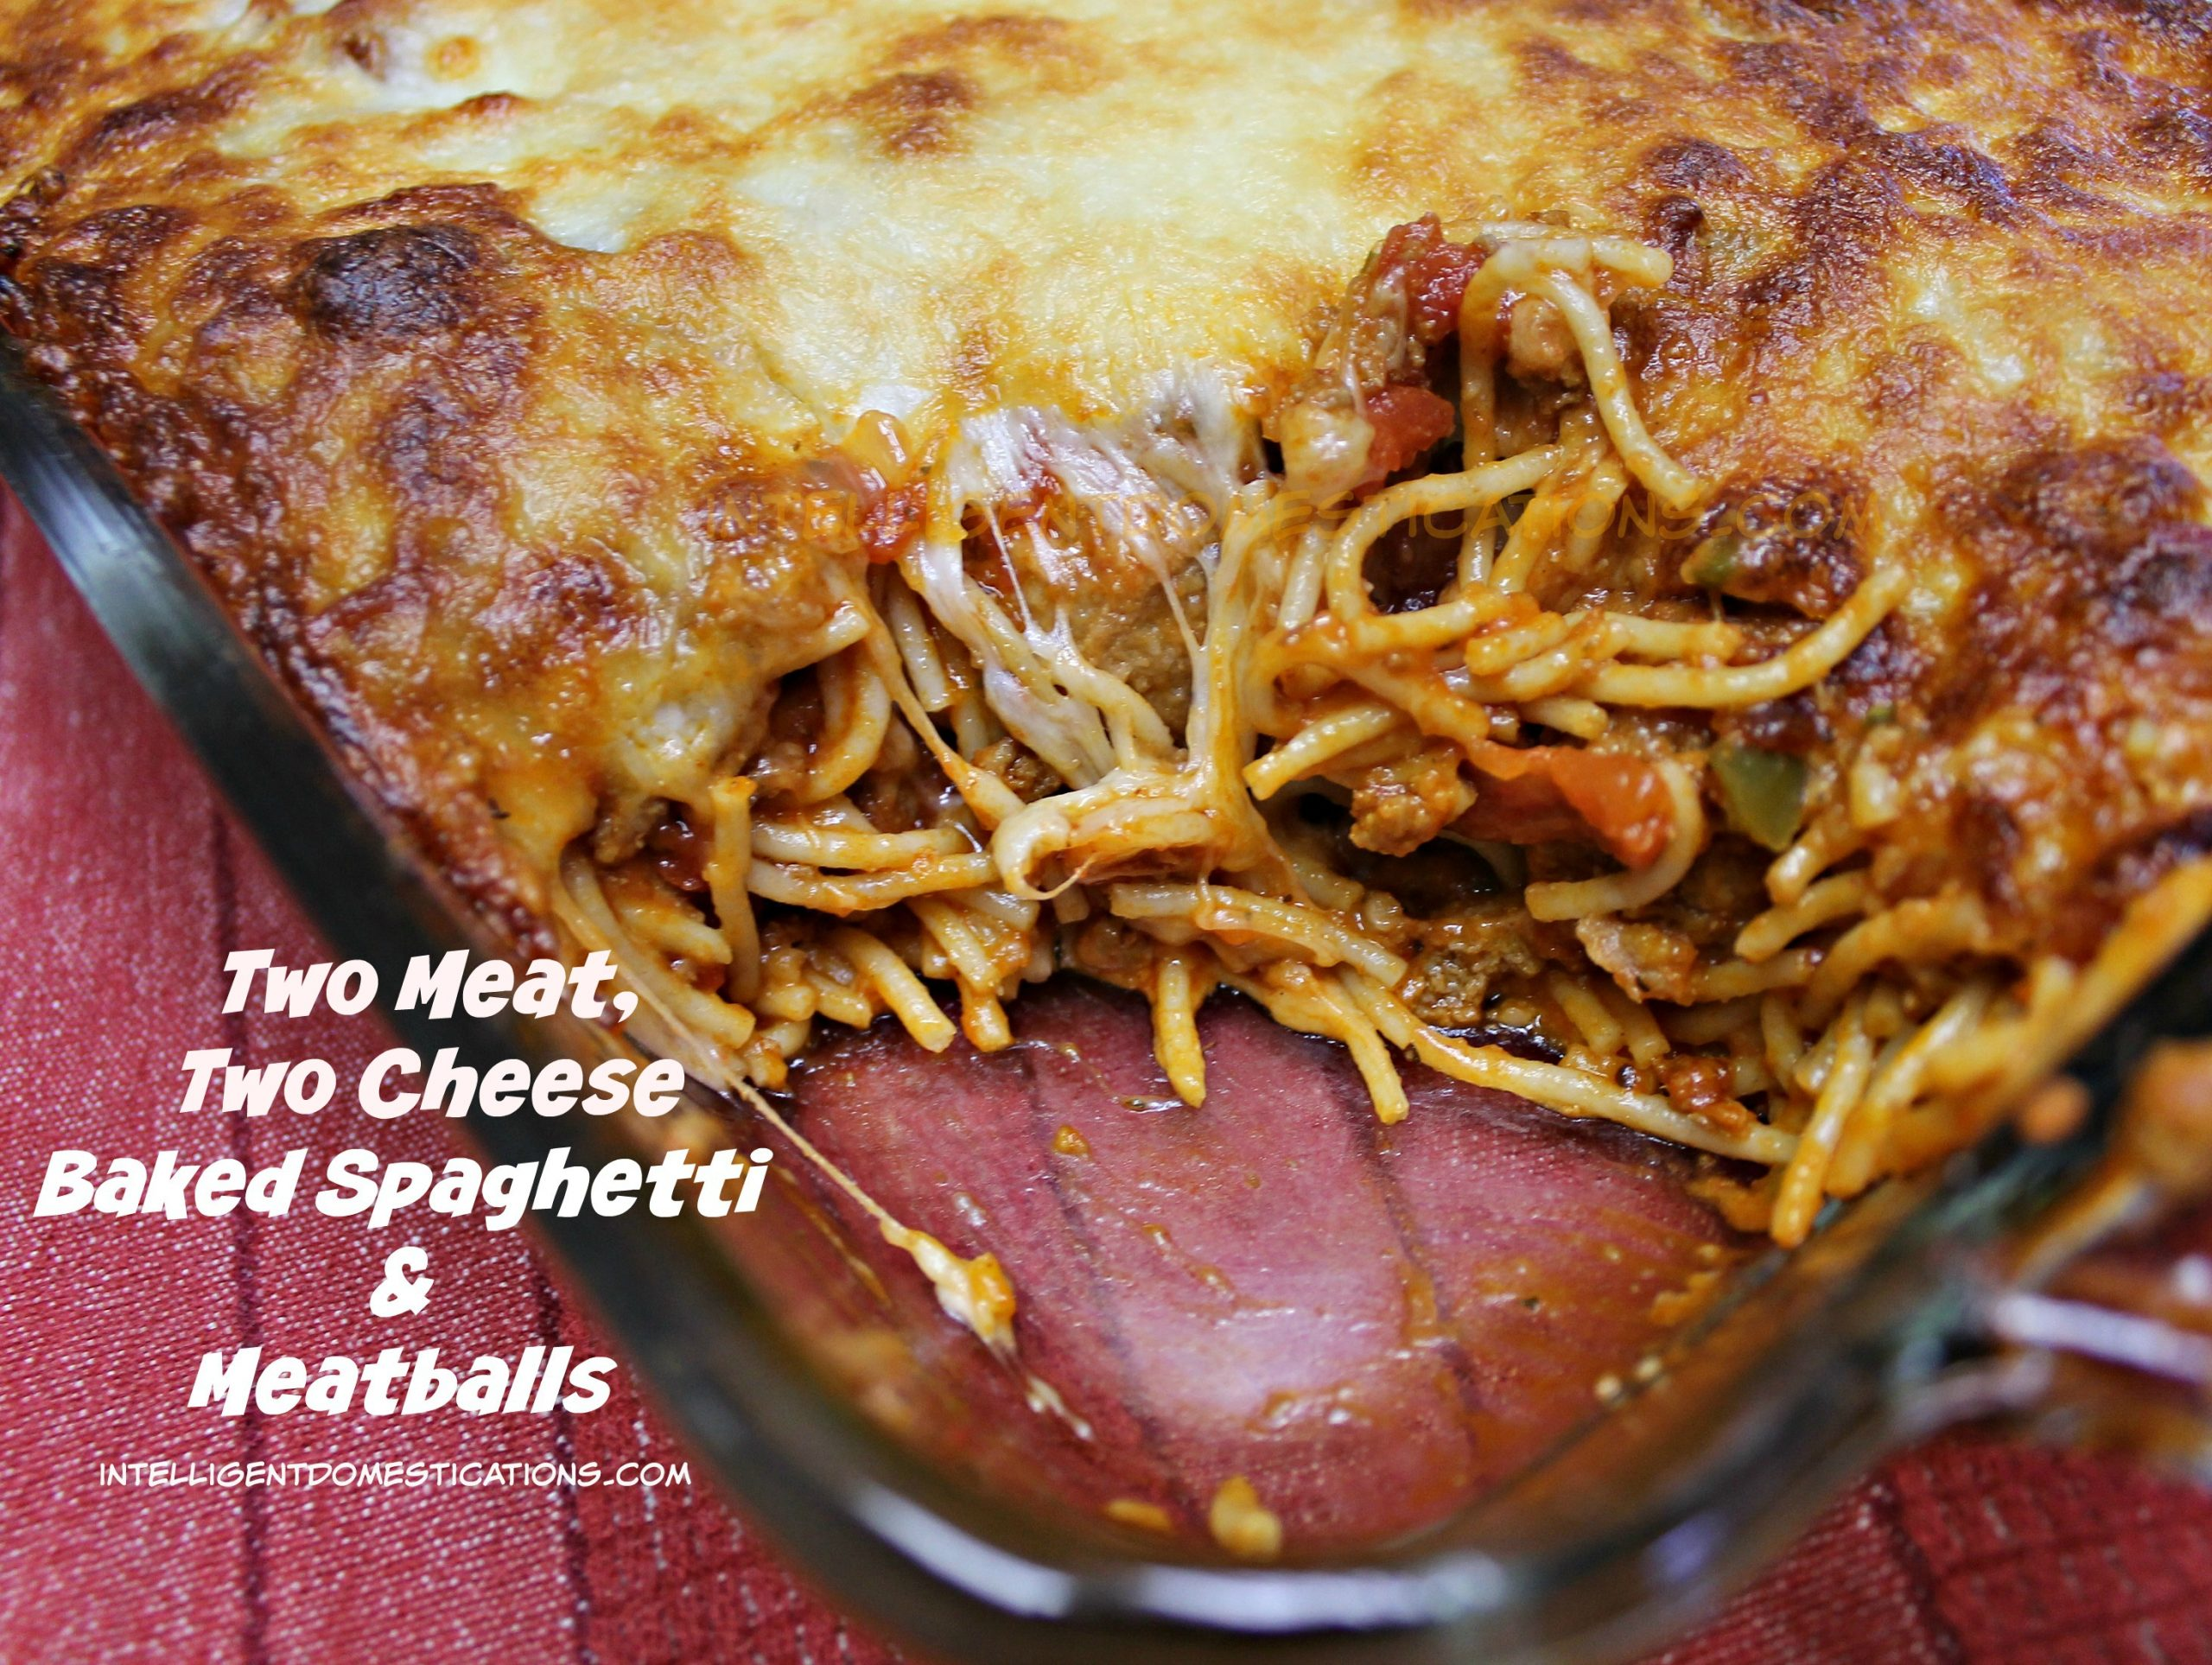 Baked Spaghetti Recipe. Homemade Baked Spaghetti is the best and we added meatballs along with the ground beef in this recipe. #bakedspaghetti #recipe #groundbeefrecipe #weeknightdinner